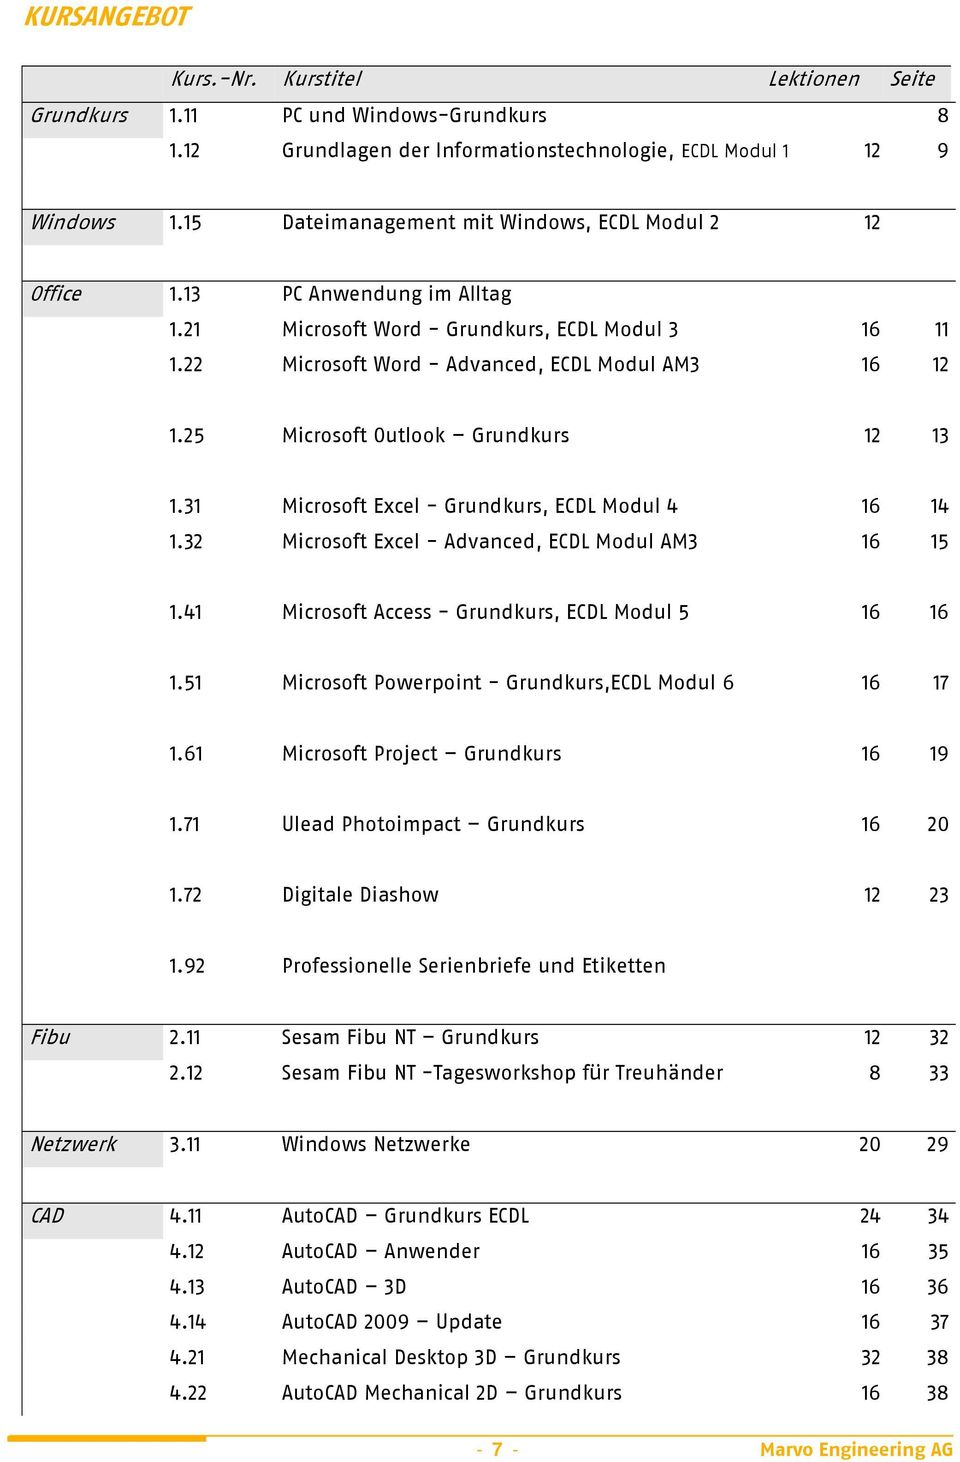 25 Microsoft Outlook Grundkurs 12 13 1.31 Microsoft Excel - Grundkurs, ECDL Modul 4 16 14 1.32 Microsoft Excel - Advanced, ECDL Modul AM3 16 15 1.41 Microsoft Access - Grundkurs, ECDL Modul 5 16 16 1.